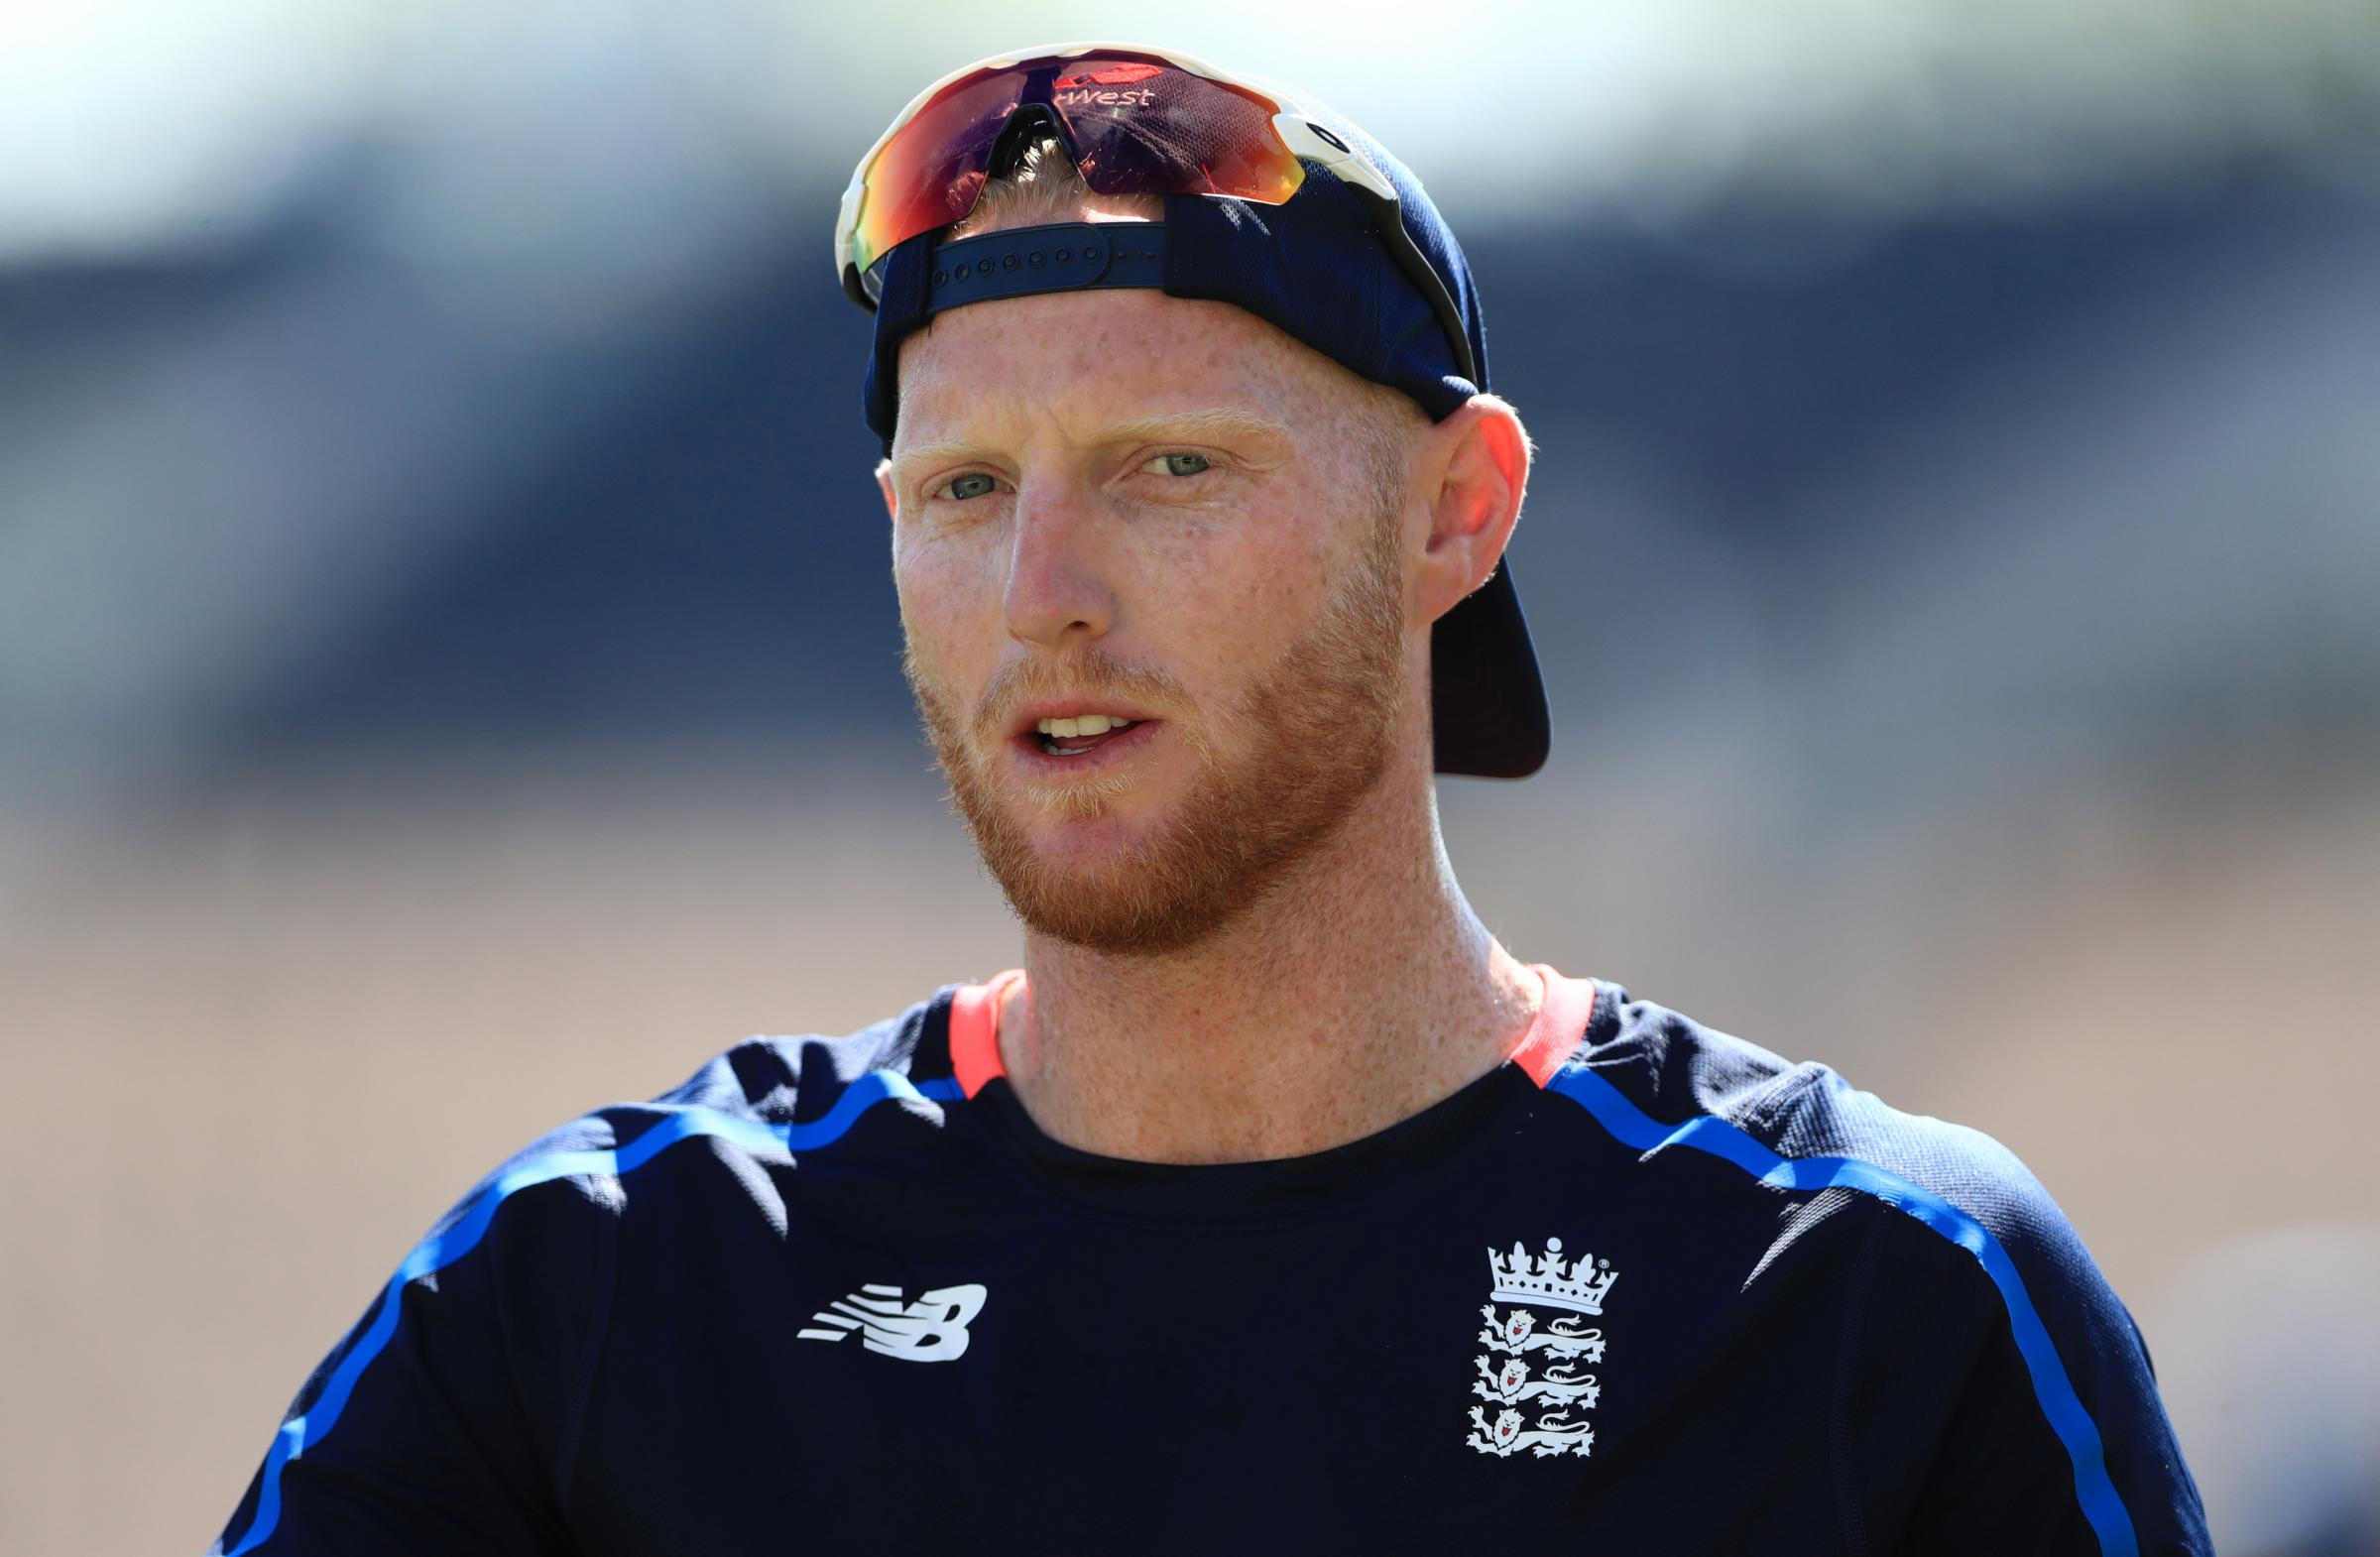 Ben Stokes, who is training at Durham as he awaits the conclusion of a police investigation